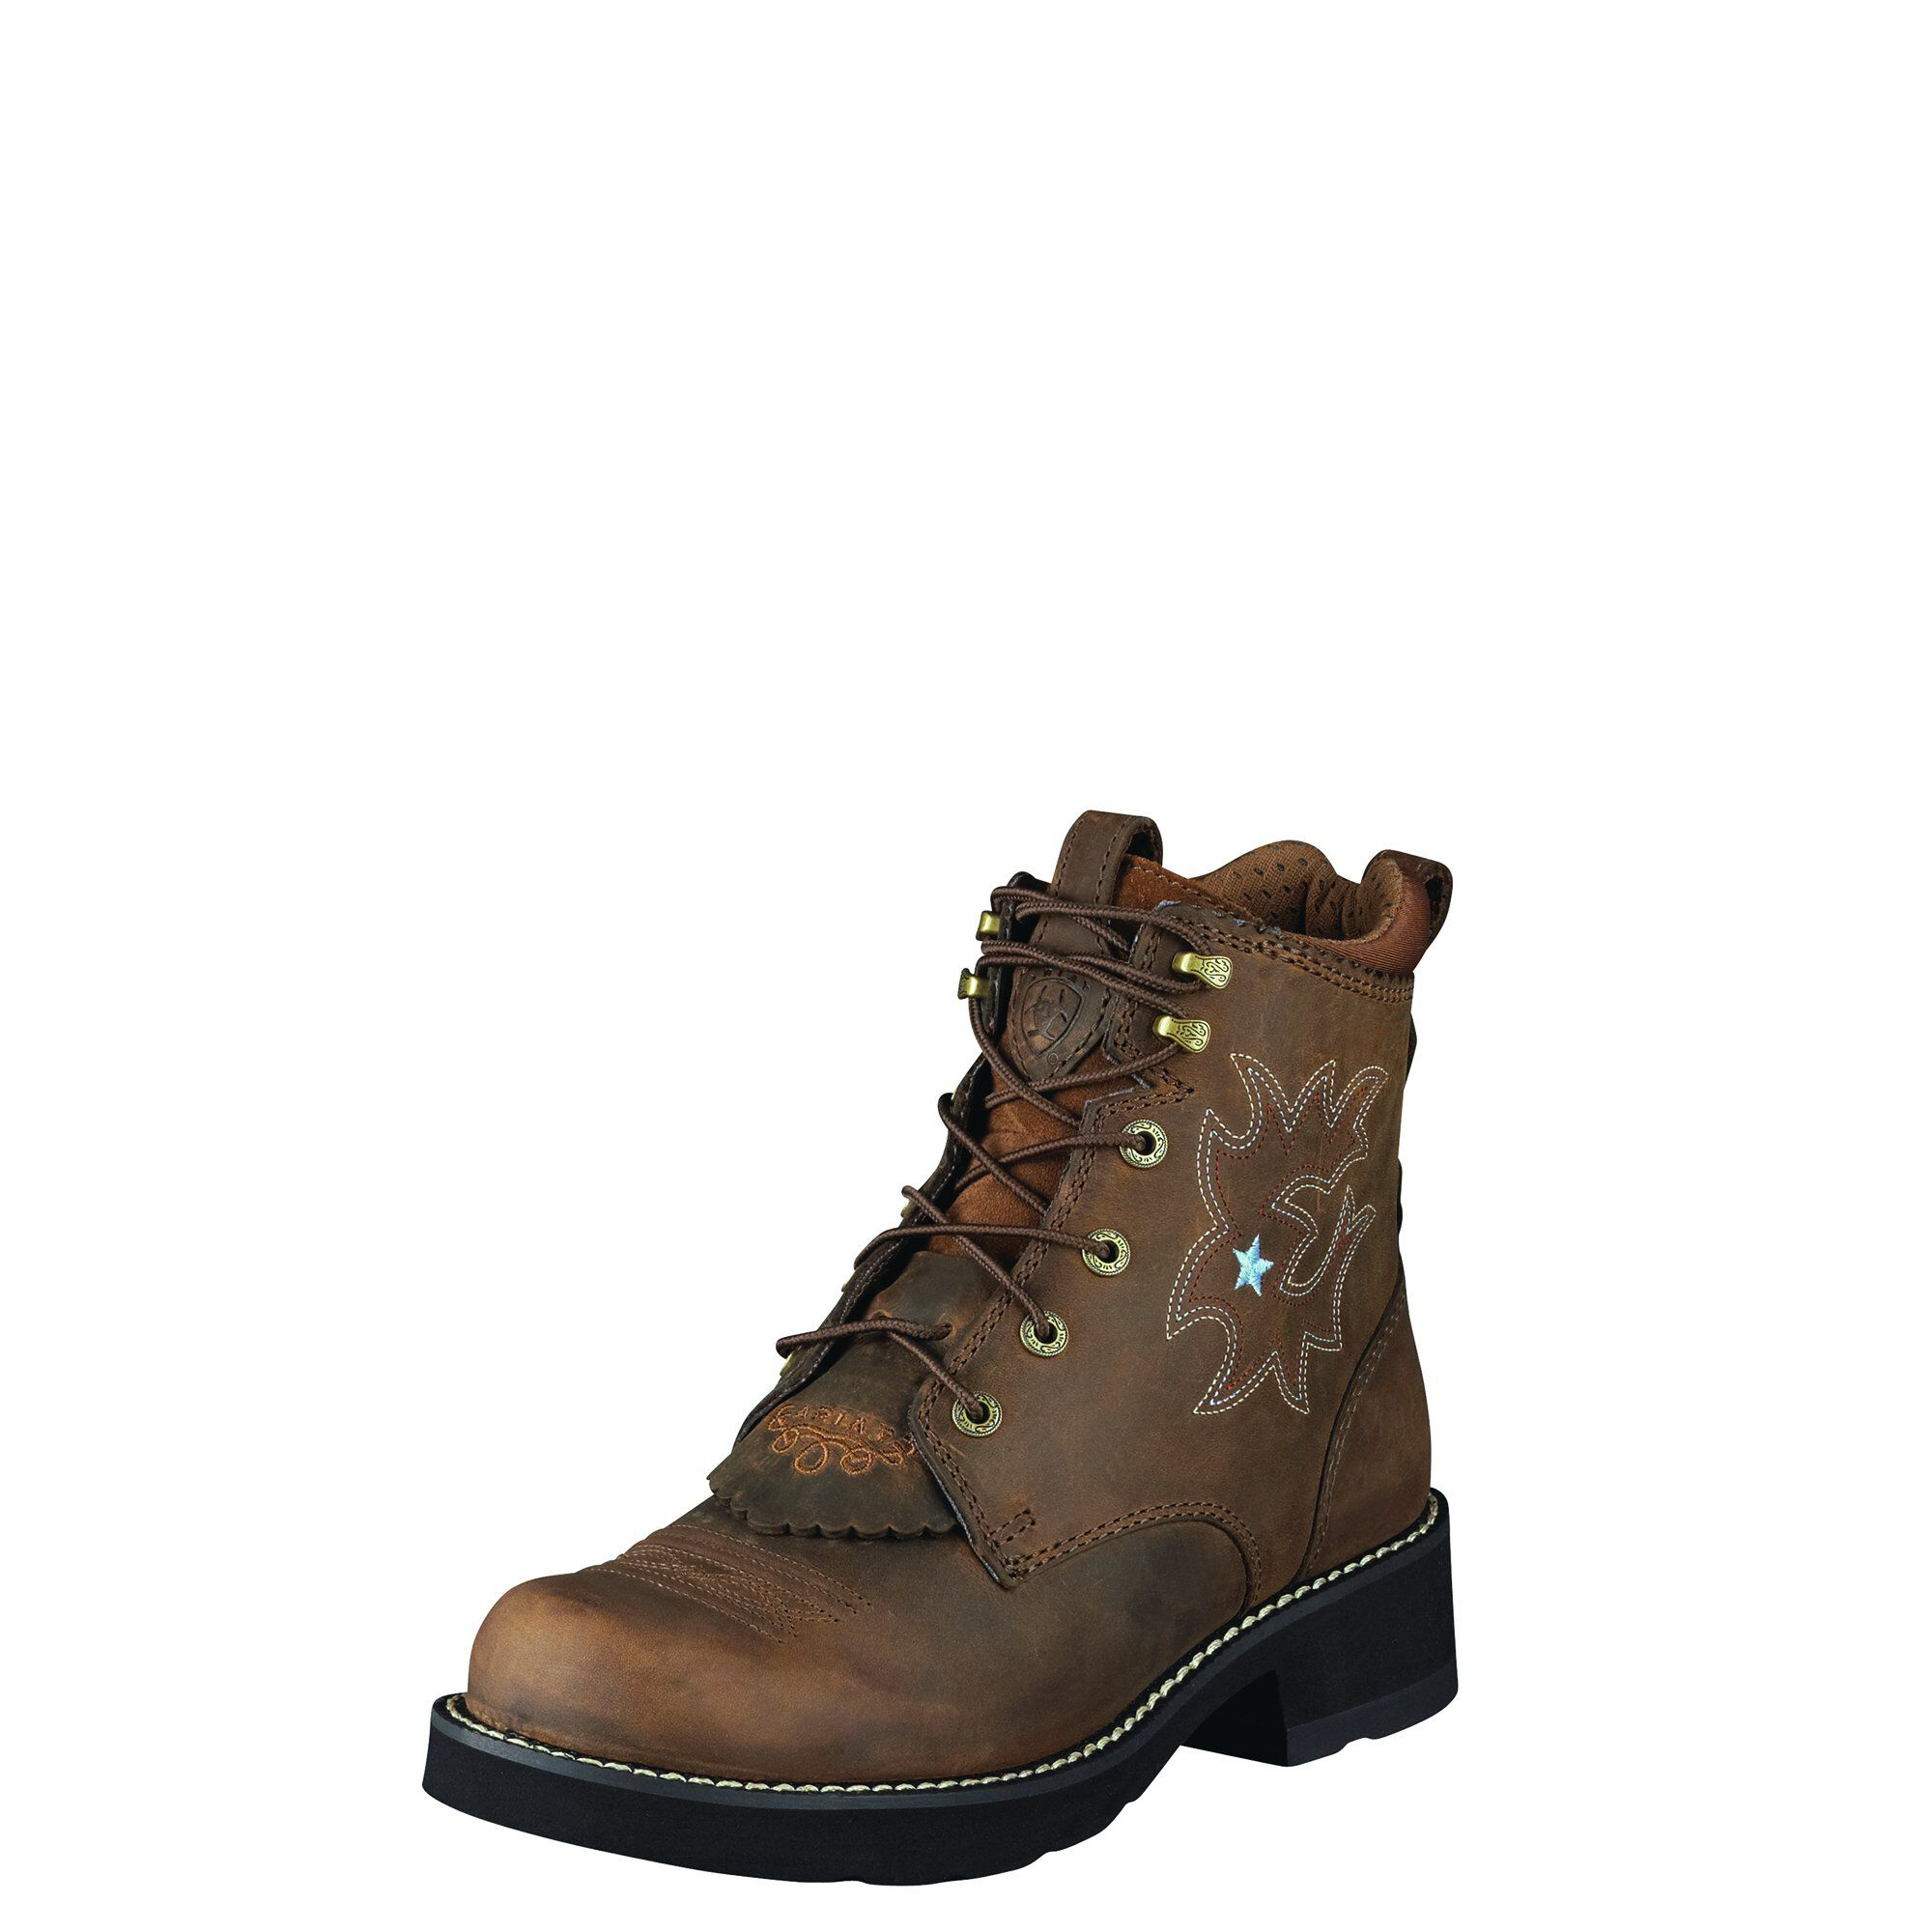 Women's Probaby Lacer Boots in Driftwood Brown by Ariat